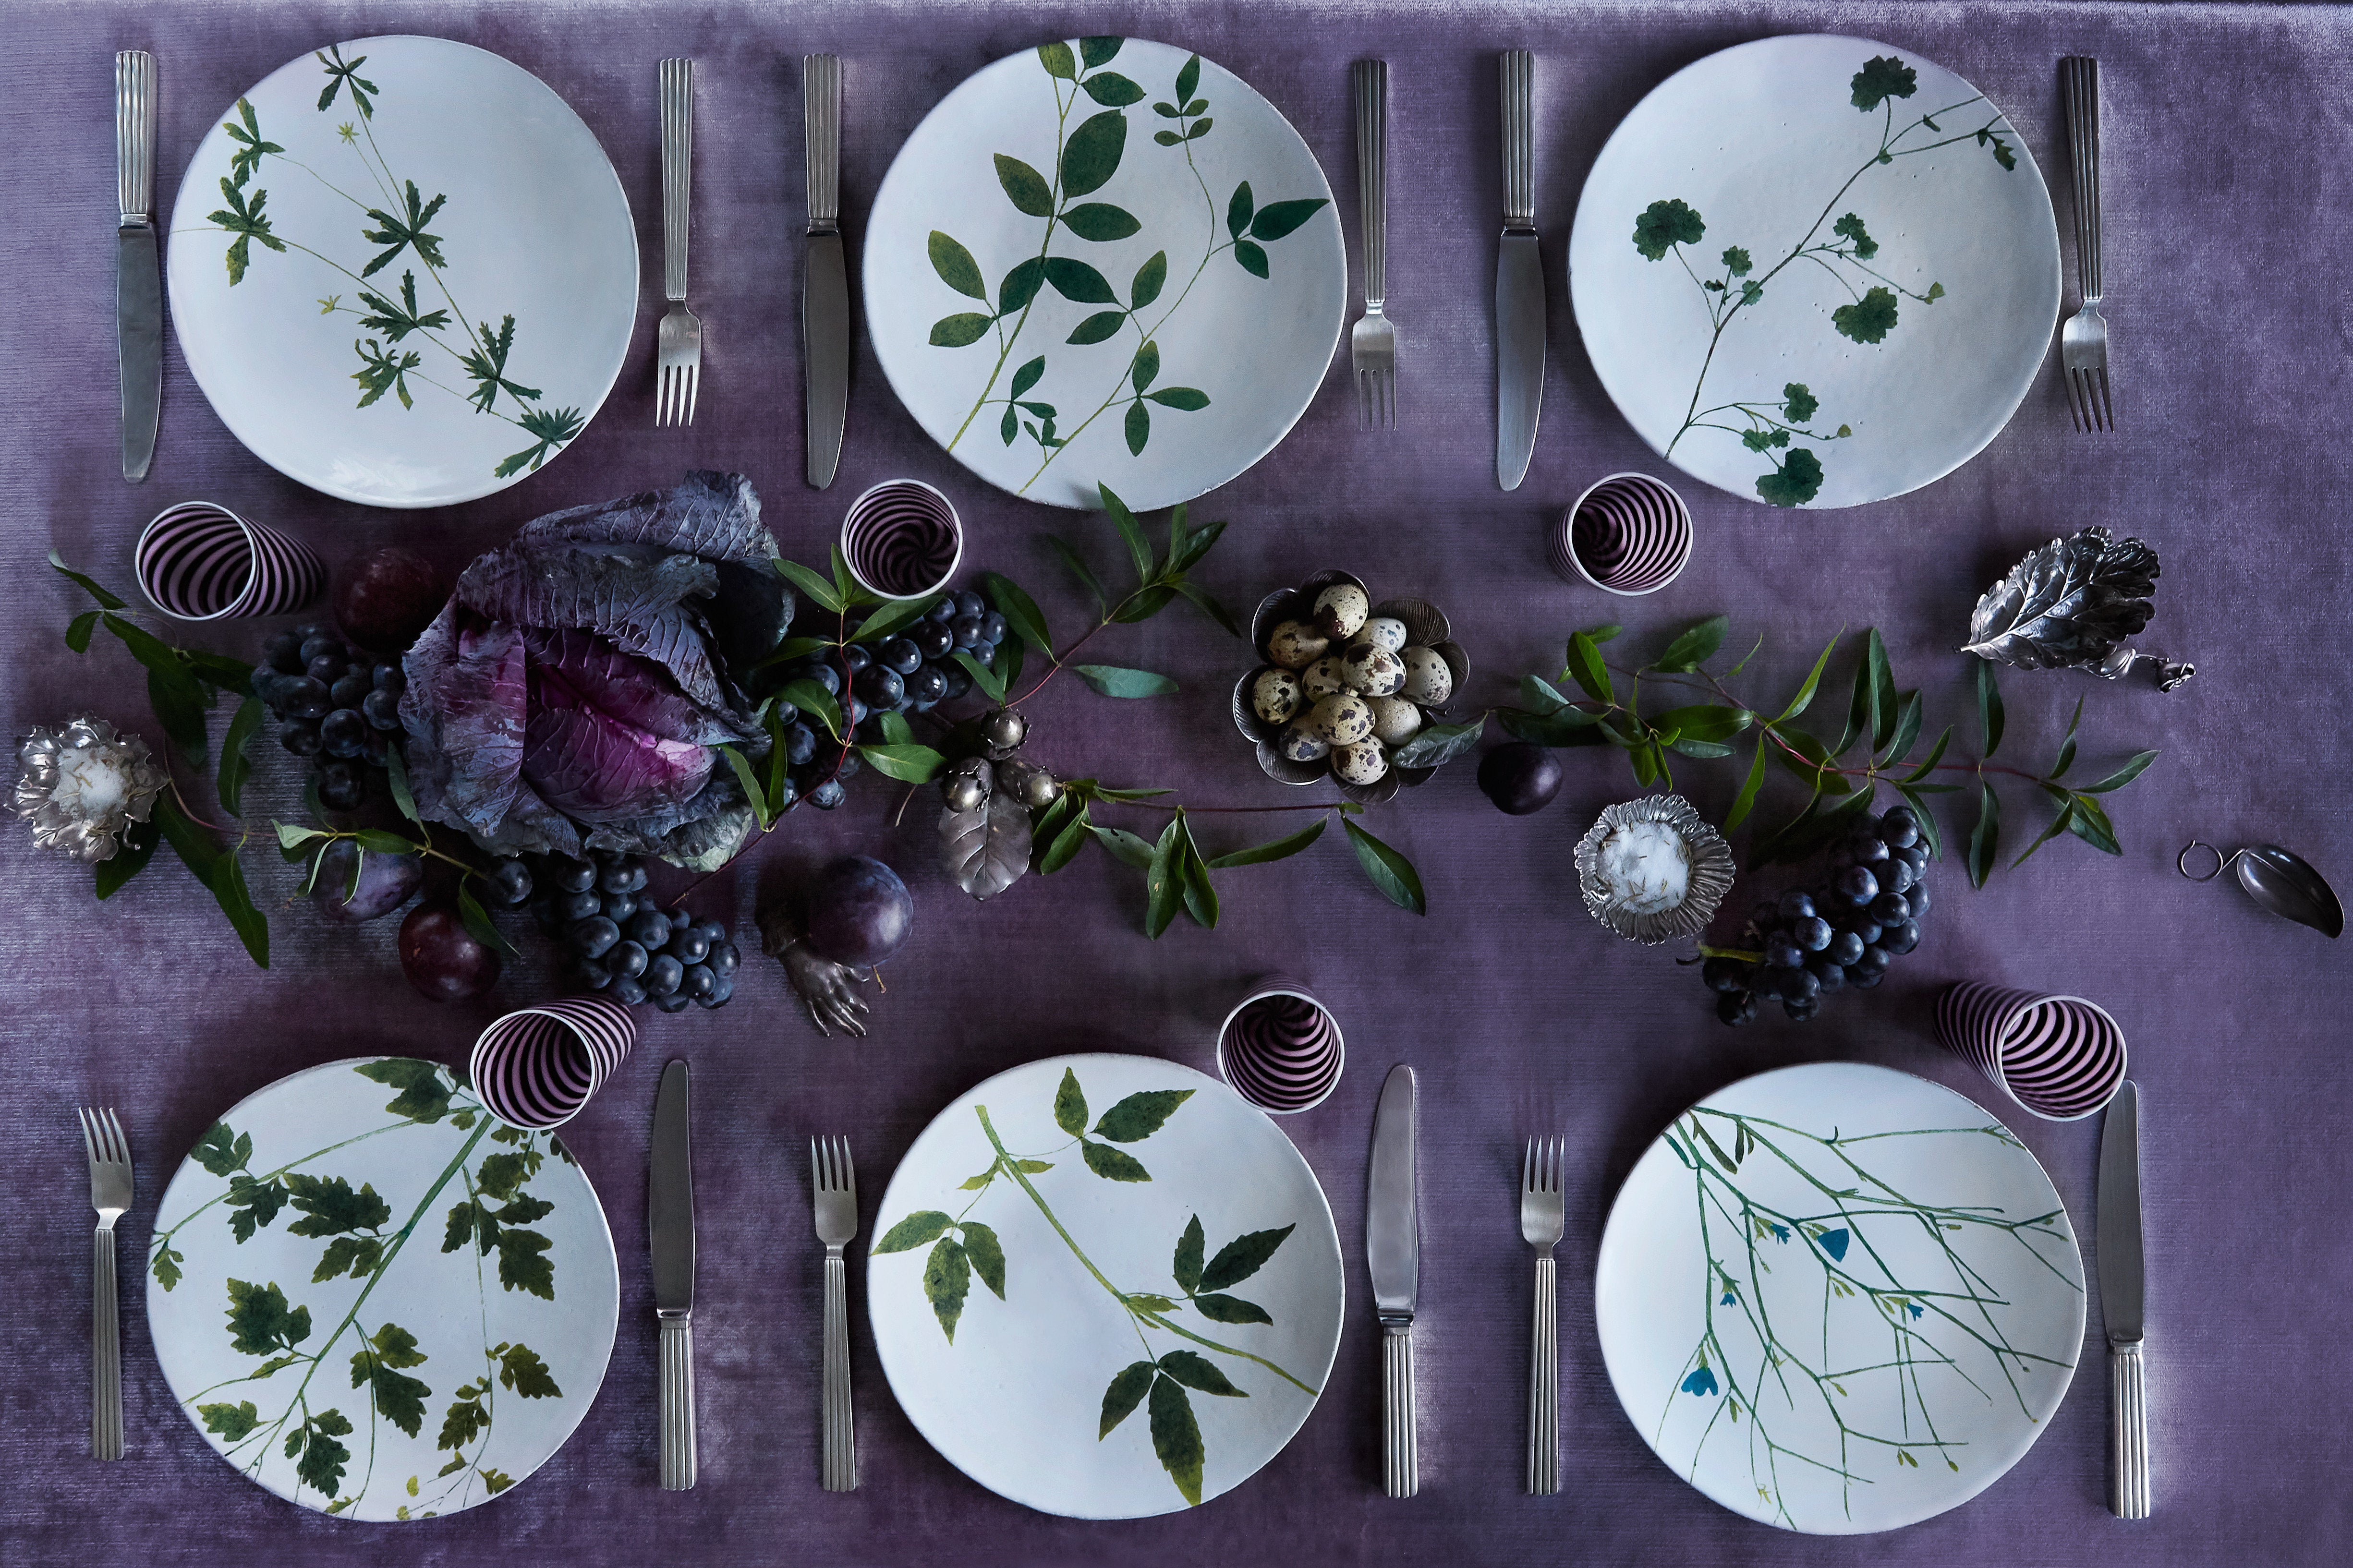 patterned floral plates on a dark purple table